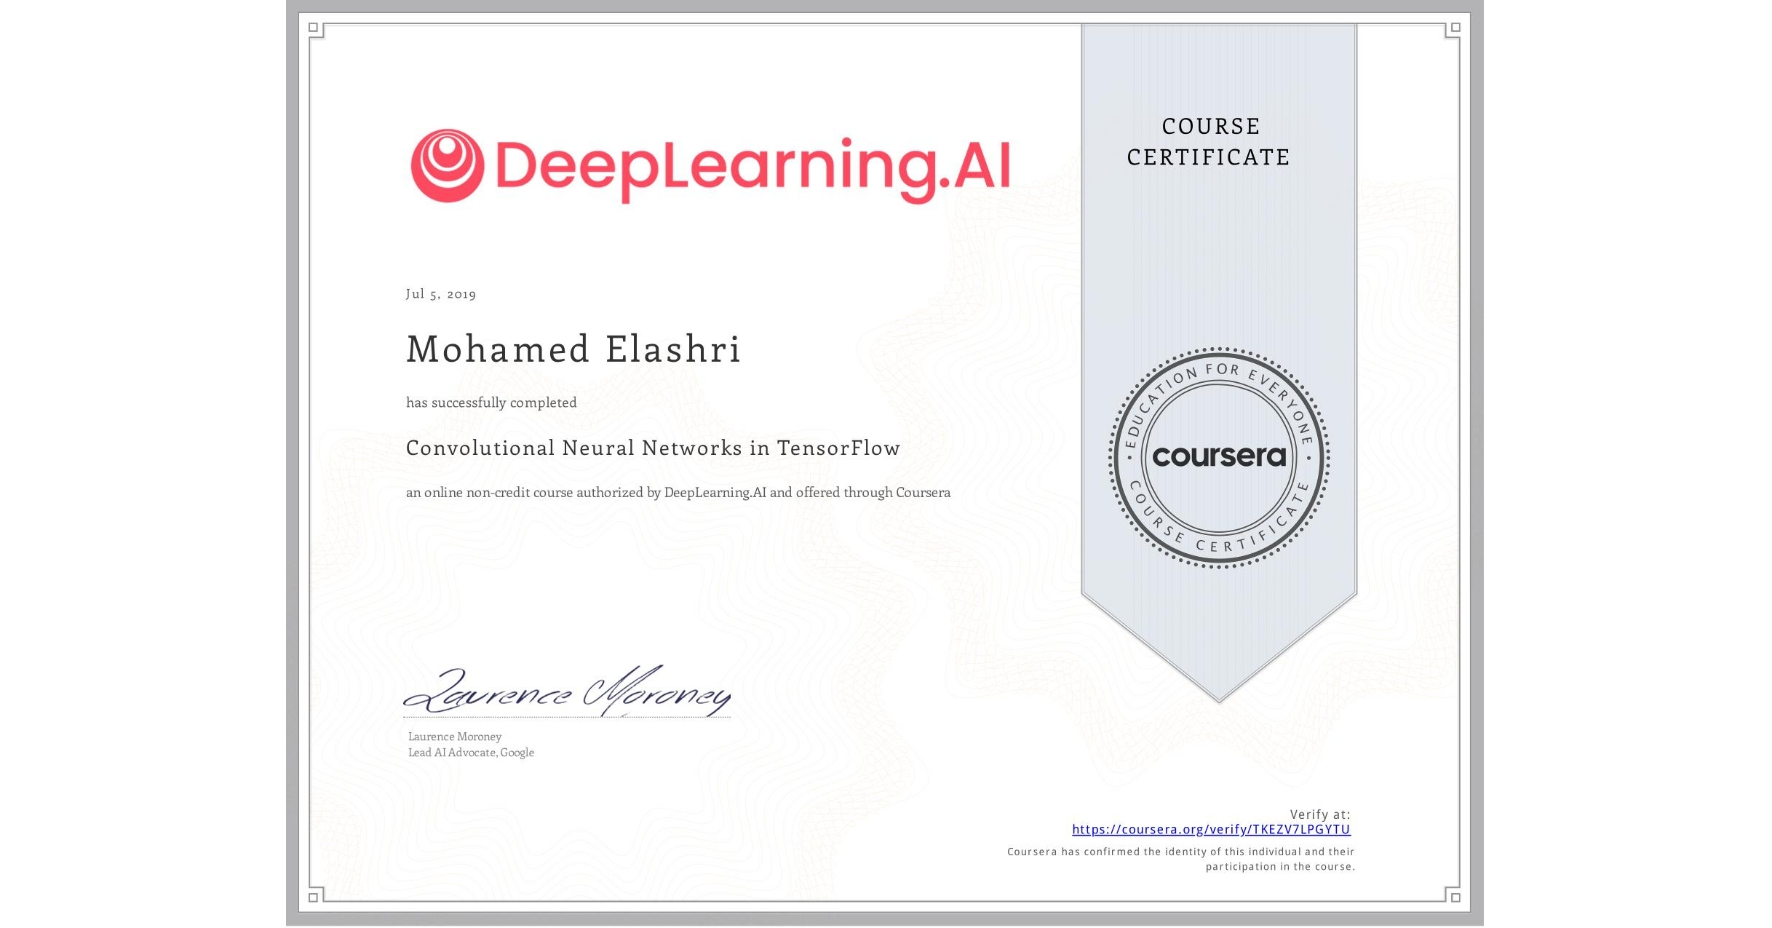 View certificate for Mohamed Elashri, Convolutional Neural Networks in TensorFlow, an online non-credit course authorized by DeepLearning.AI and offered through Coursera